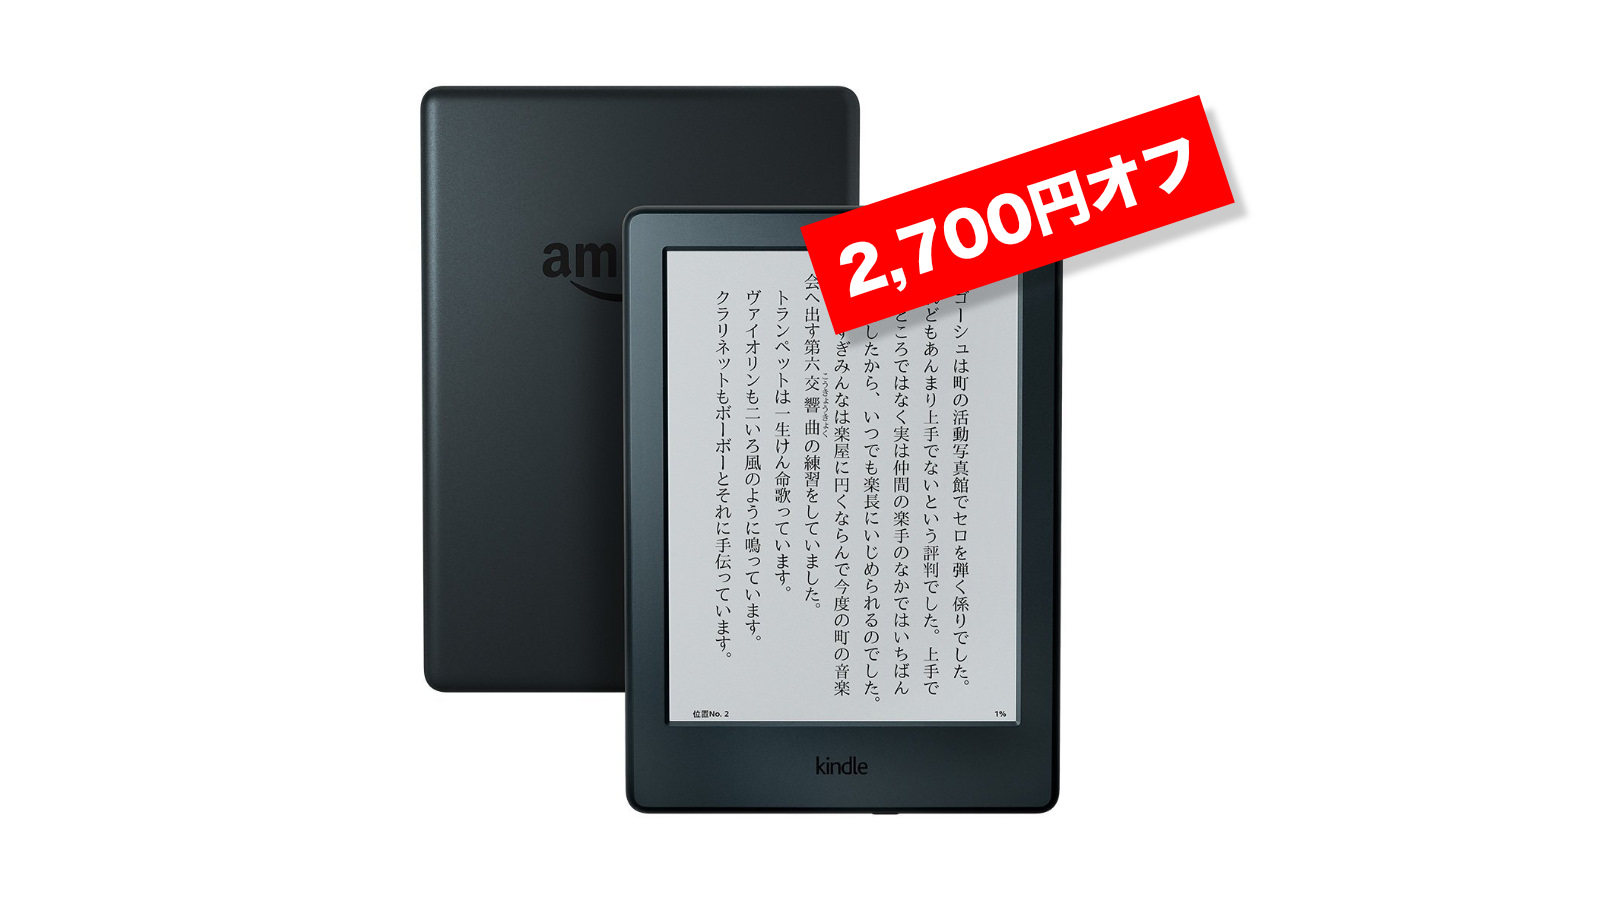 Kindle on sale Timesale April